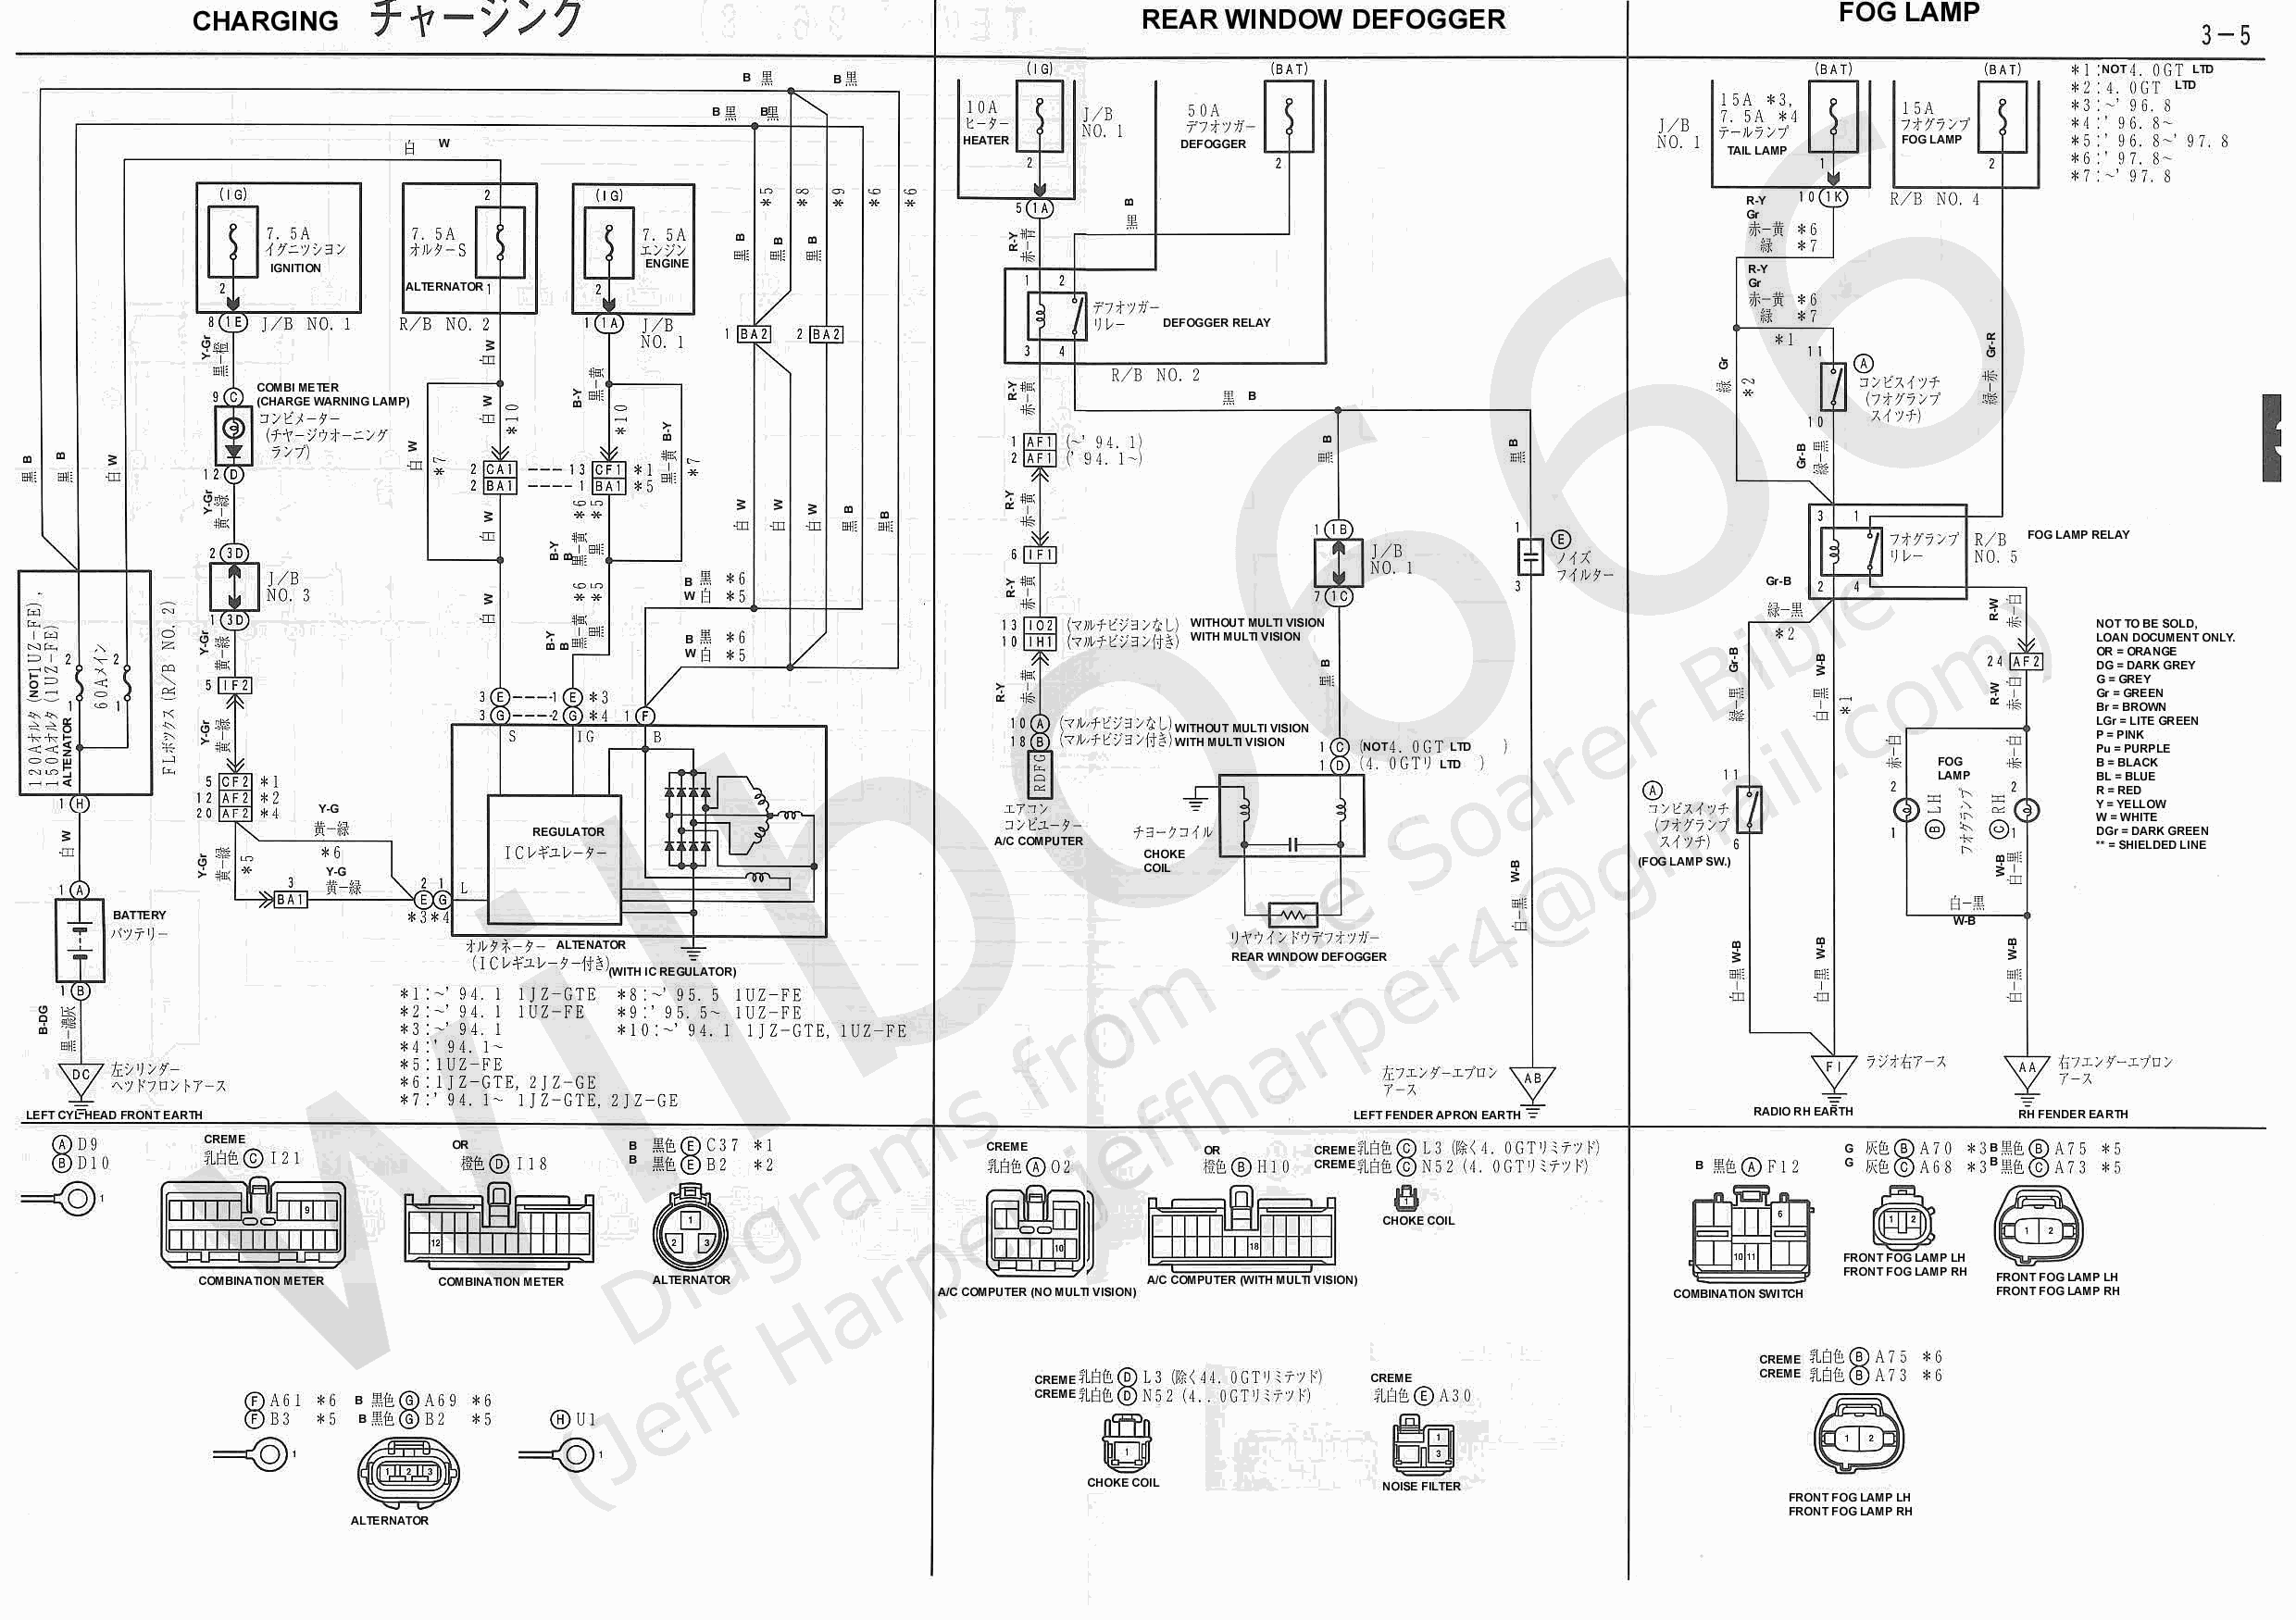 xZZ3x Electrical Wiring Diagram 6737105 3 5?resize\\\\\\\\\\\\\\\\\\\\\\\\\\\\\\\\\\\\\\\\\\\\\\\\\\\\\\\\\\\\\\\\\\\\\\\\\\\\\\\\\\\\\\\\\\\\\\\=665%2C469 3sge beams wiring diagram race lexus is200 beams \u2022 wiring diagrams ae86 wiring harness at nearapp.co